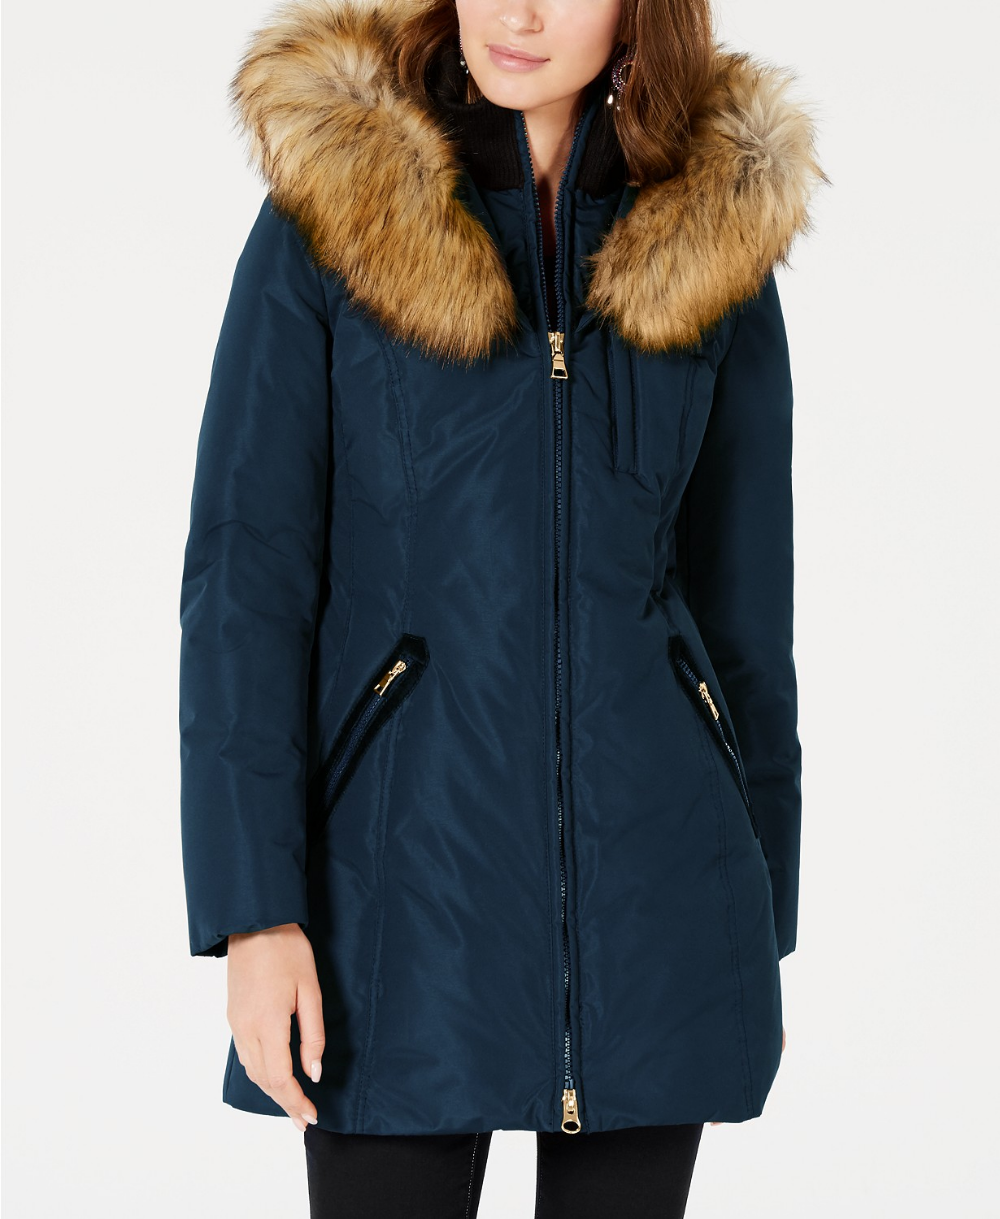 Inc International Concepts Inc Front Zip Faux Fur Trim Hooded Puffer Coat Created For Macy S Reviews Coats Wom Puffer Coat Clearance Clothes Big Clothes [ 1219 x 1000 Pixel ]